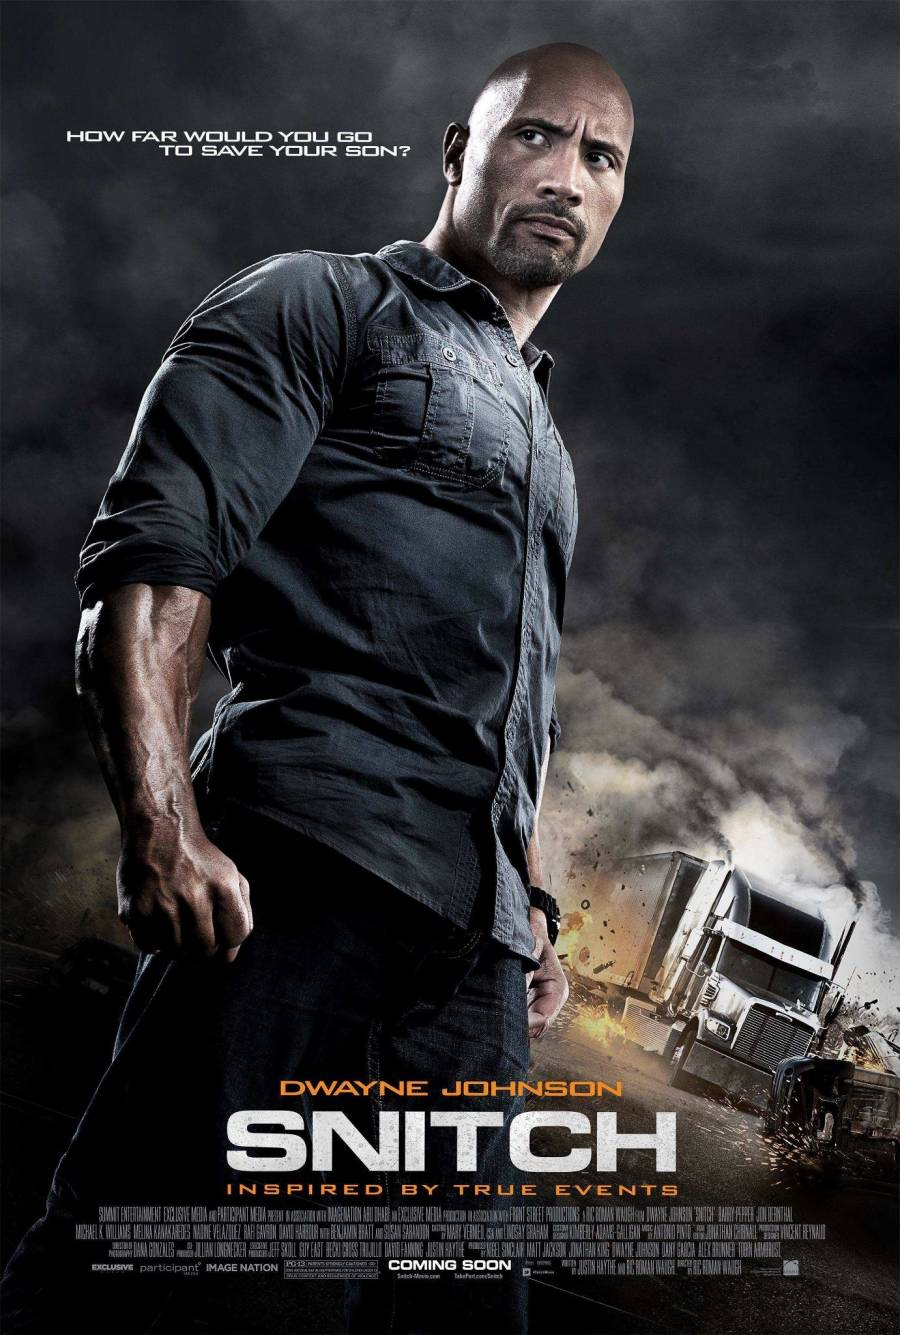 Snitch (2013) BluRay 1080p 5.1CH x264 1.4GB